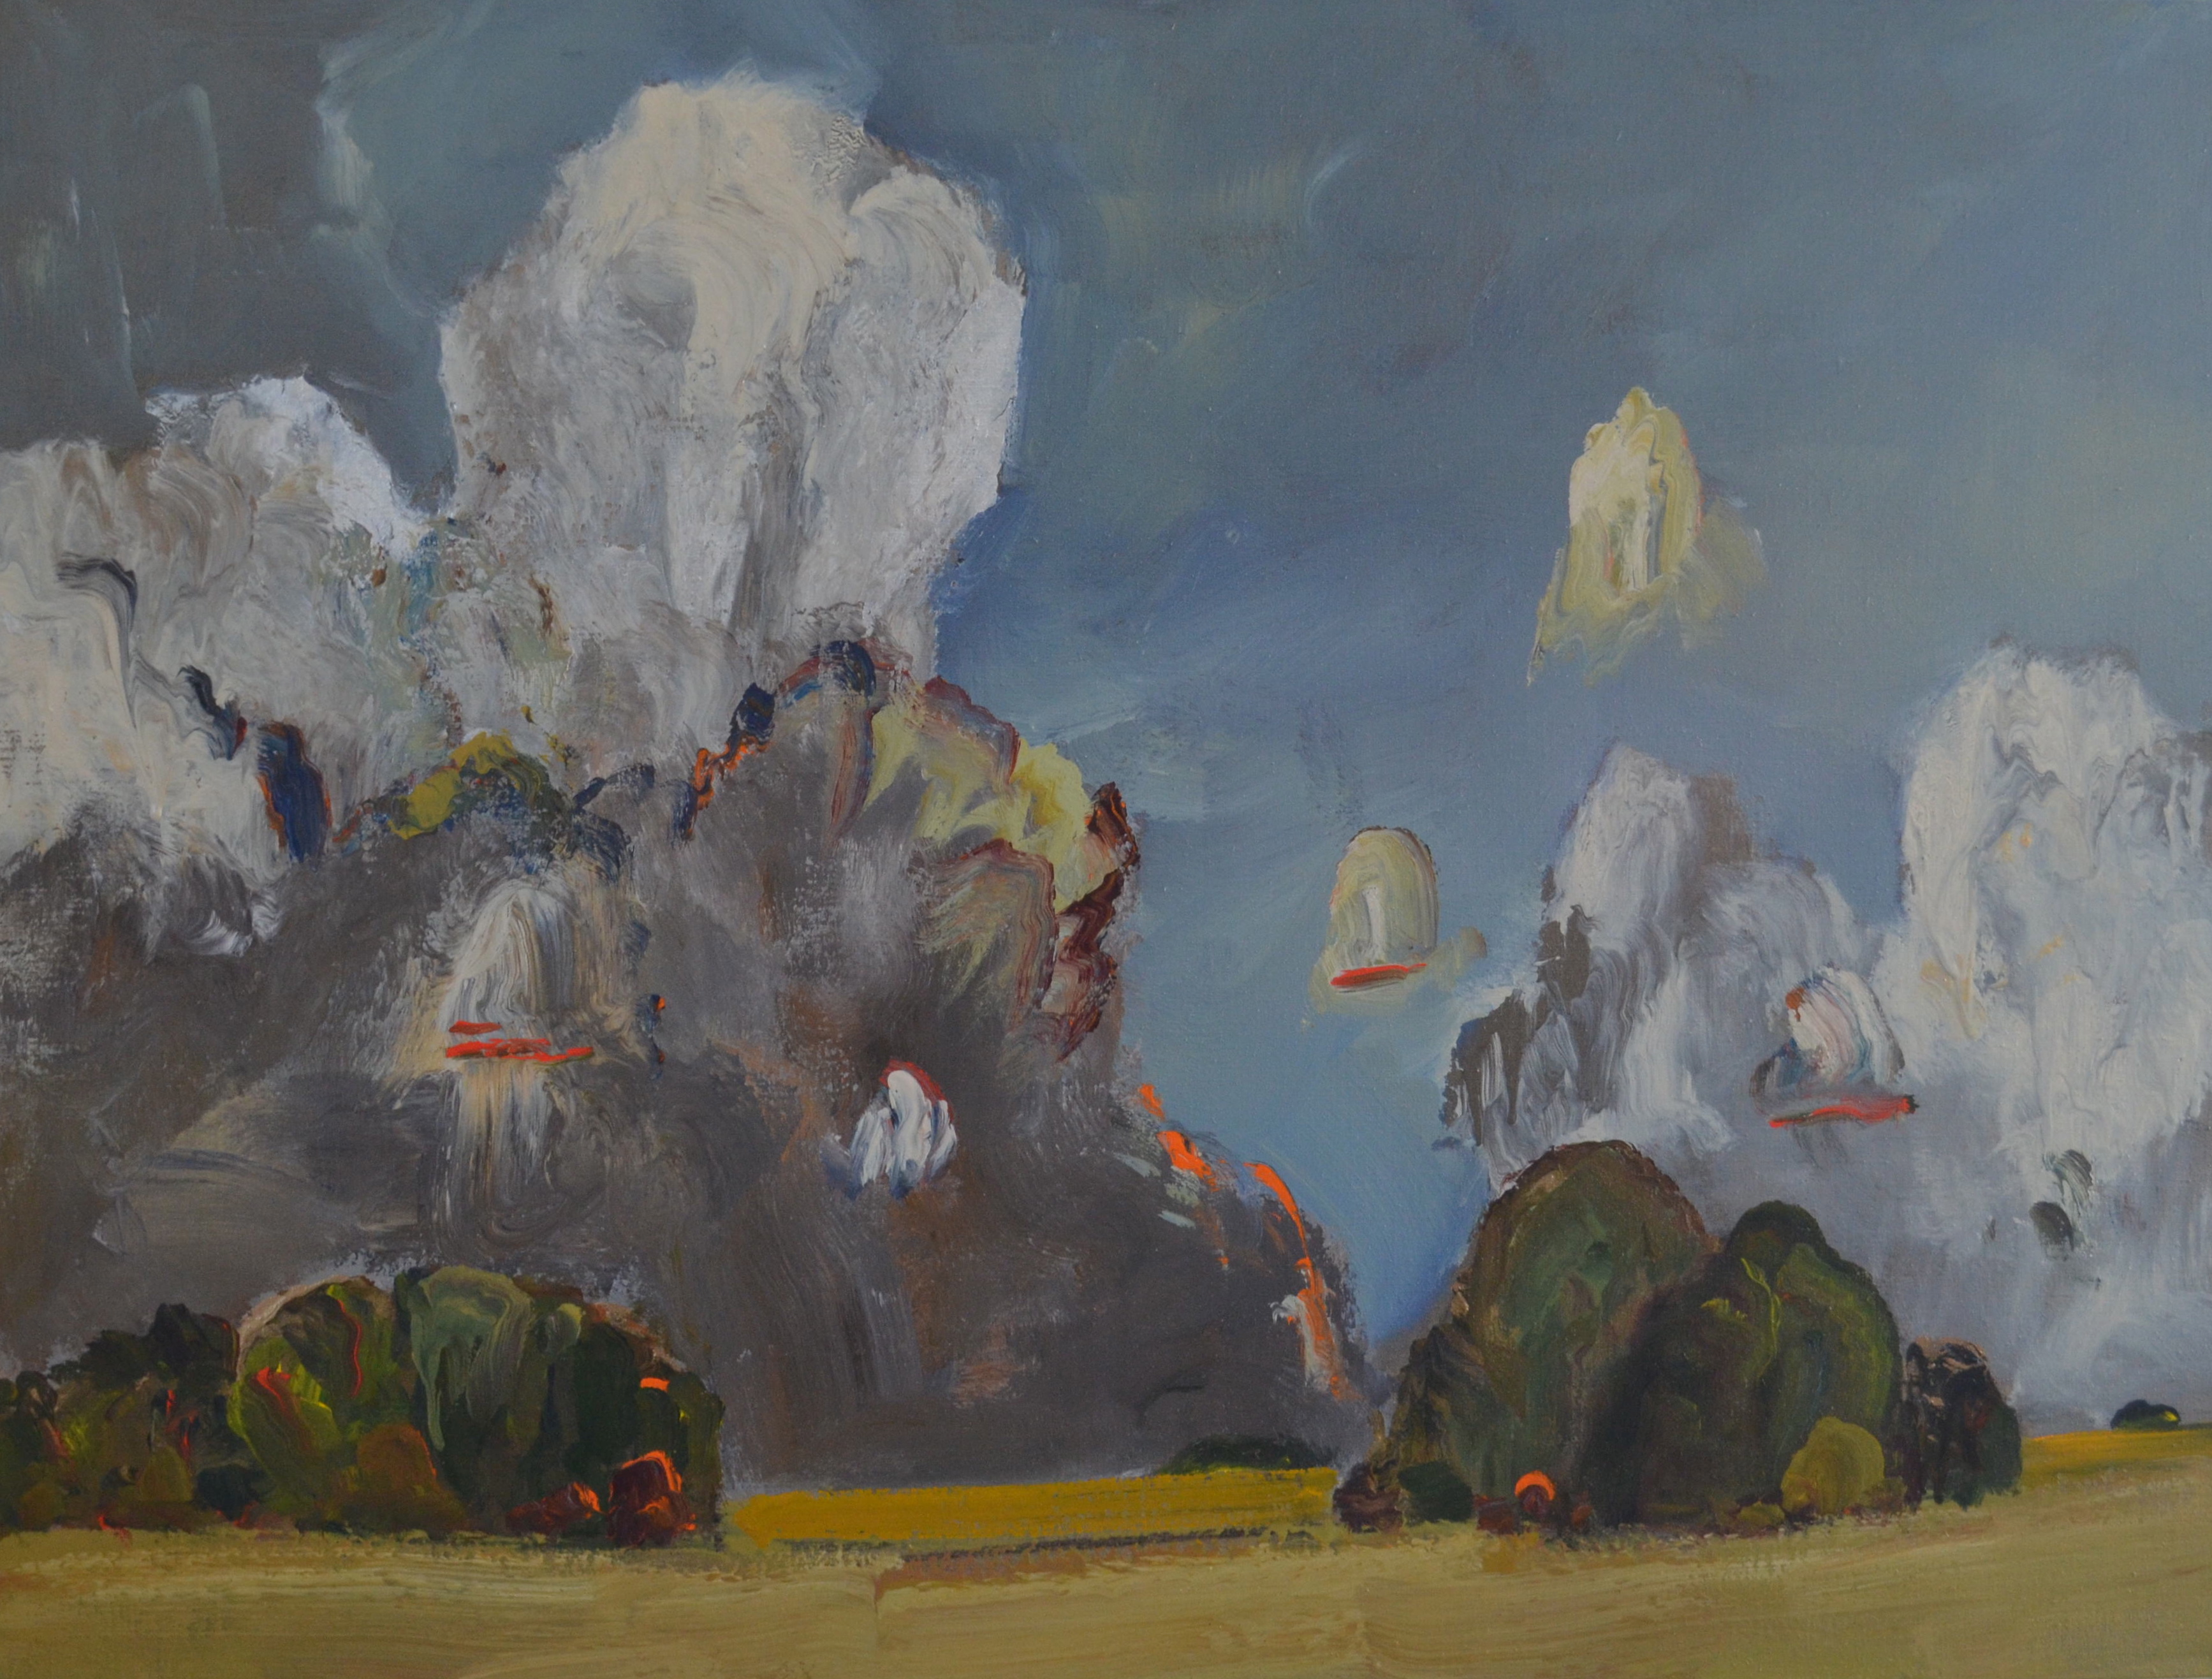 Poplar-Bluffs-and-Clouds-2013-36in-x-48in-Acrylic-on-linen